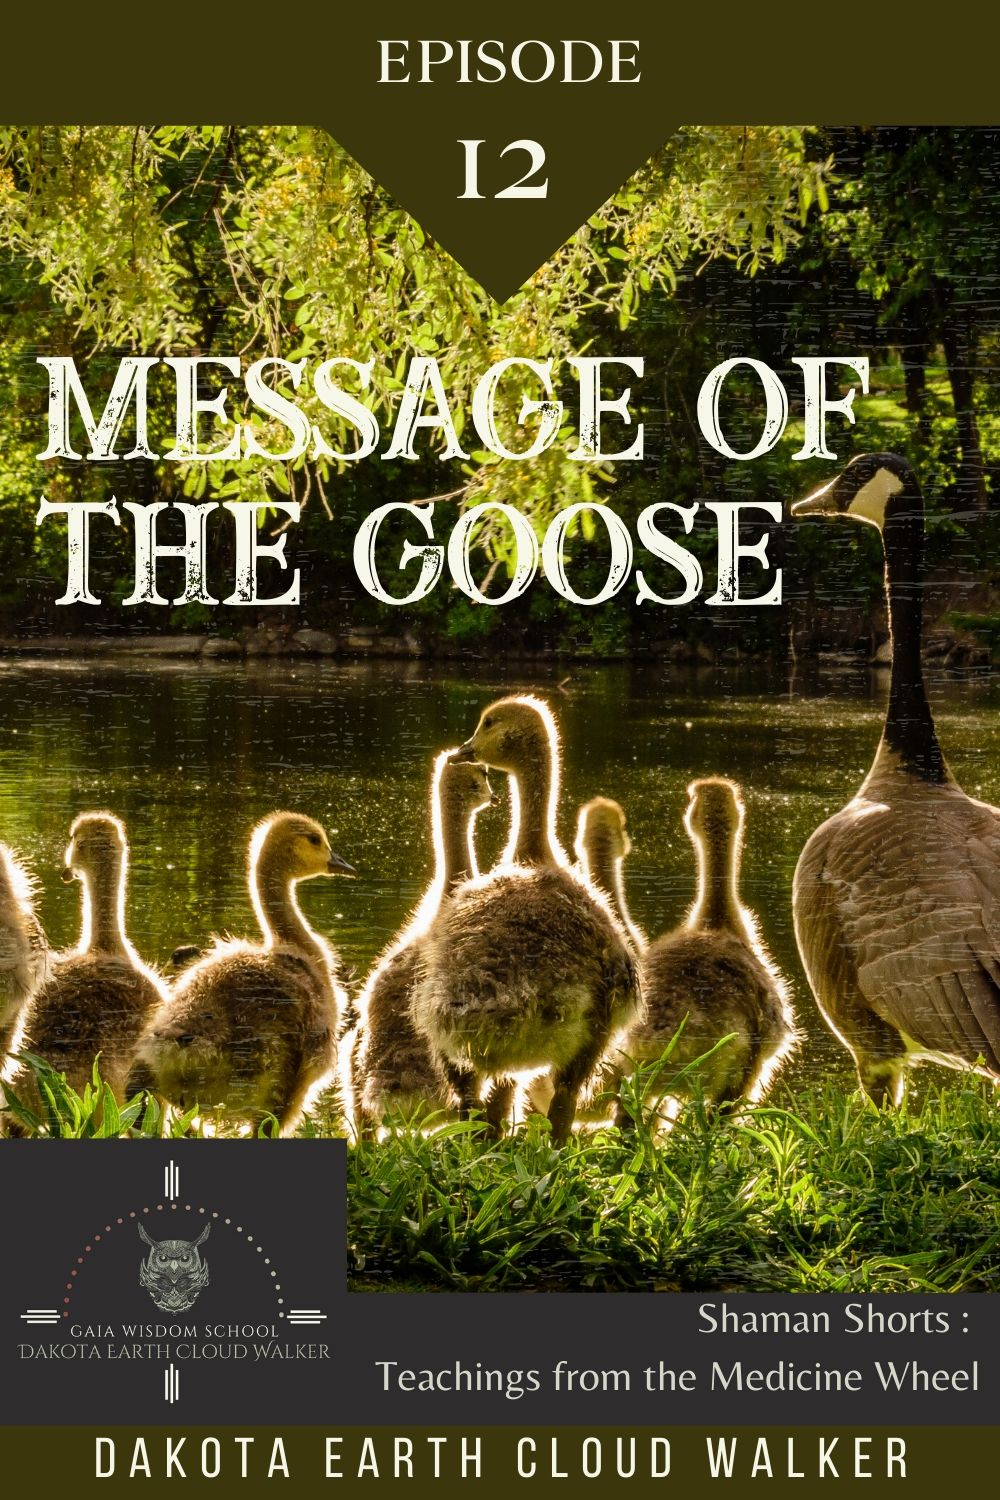 [Shaman Short 012]  Meaning of the Goose